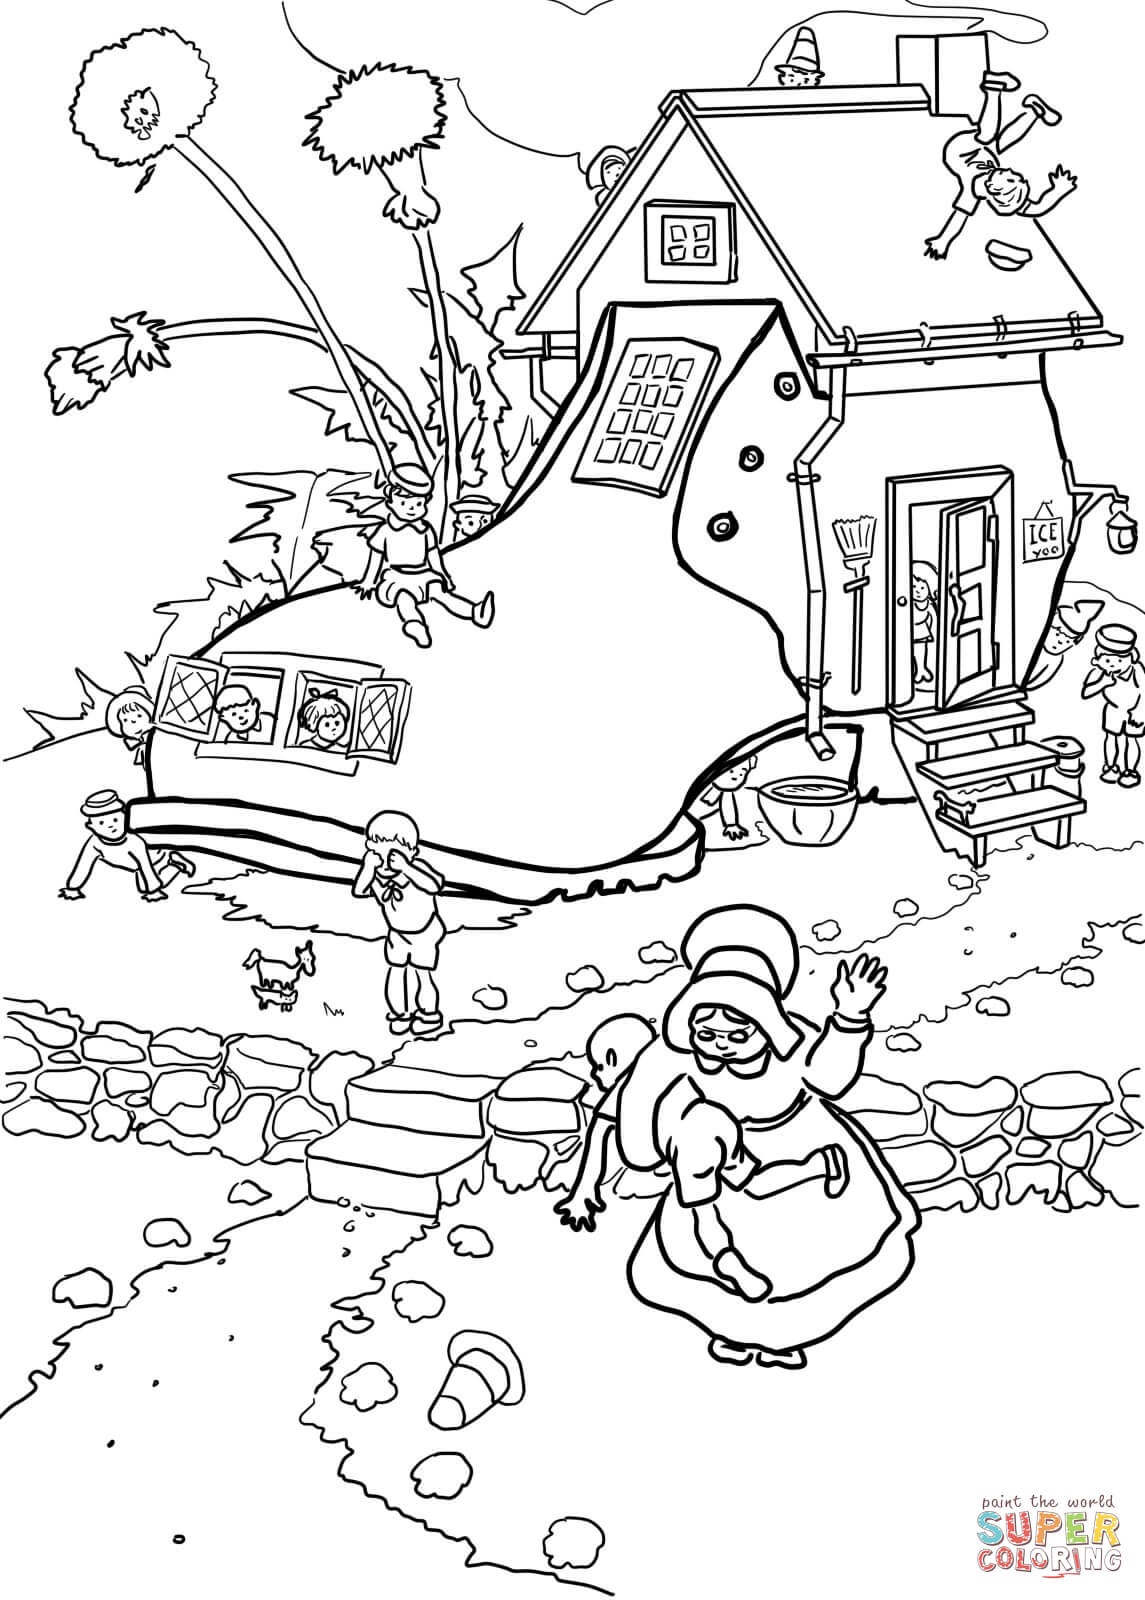 coloring pages for older girls complex coloring pages for 10 to 12 year old girls print older girls for coloring pages